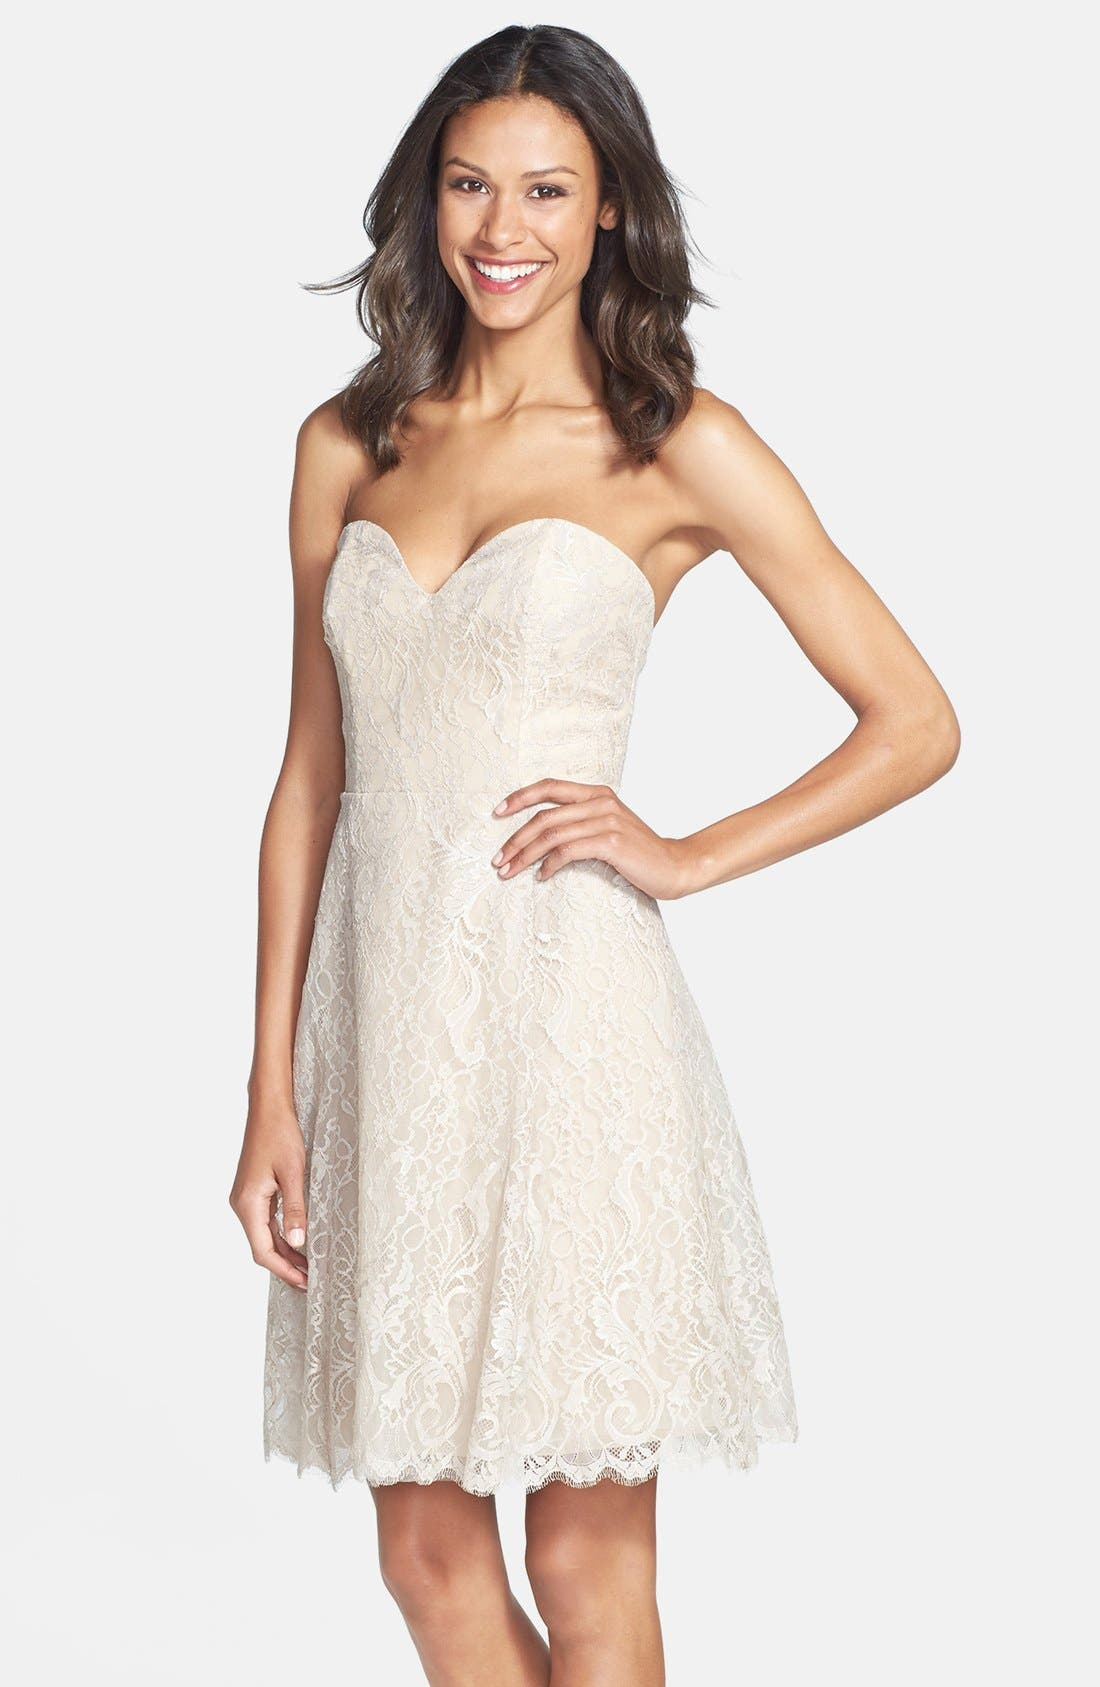 Alternate Image 1 Selected - Jim Hjelm Occasions Strapless Lace A-Line Dress